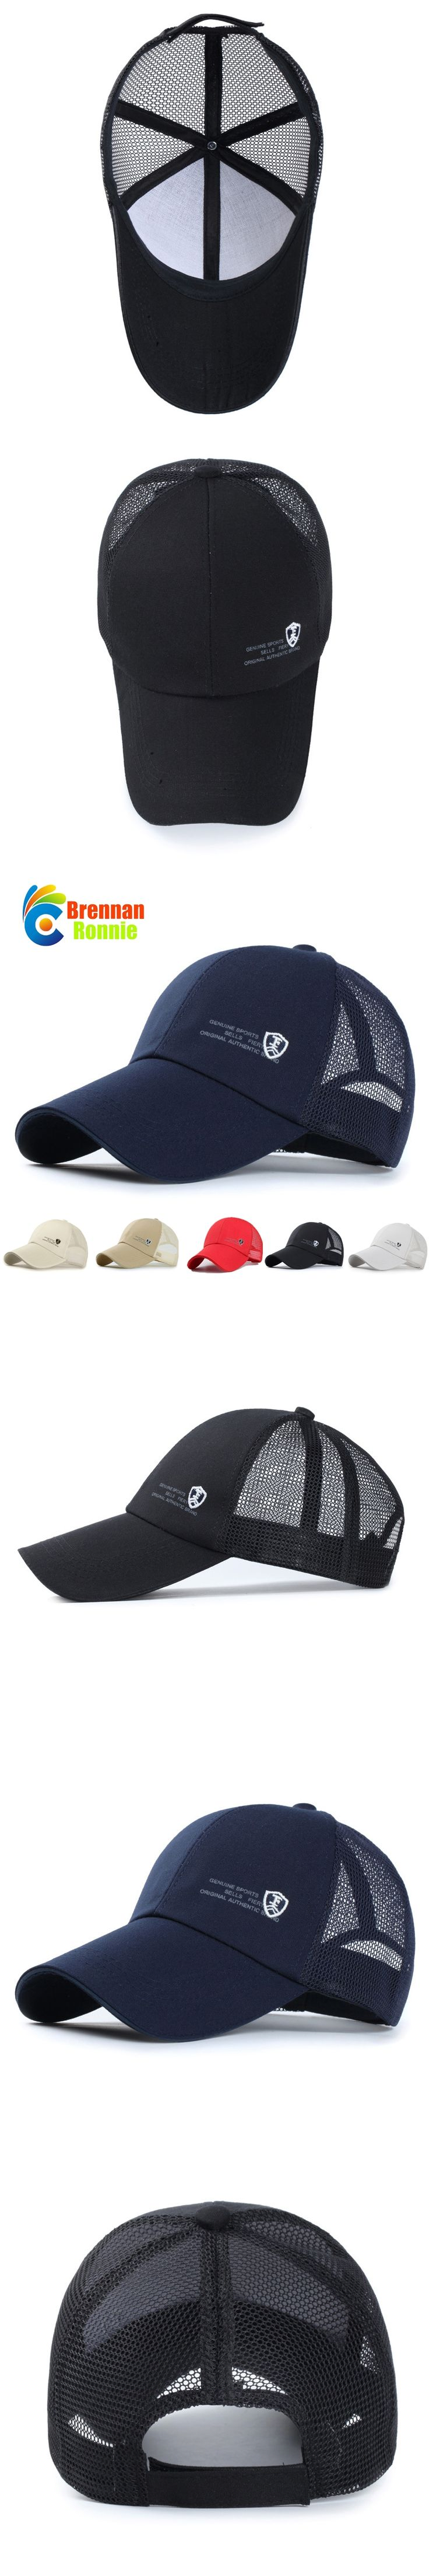 2017 Fashion Men's Visors Cap Anti-UV For Men Casquette Sun Hat Gorras Outdoor Sports Climbing Sunscreen Women's Hats Chapeu